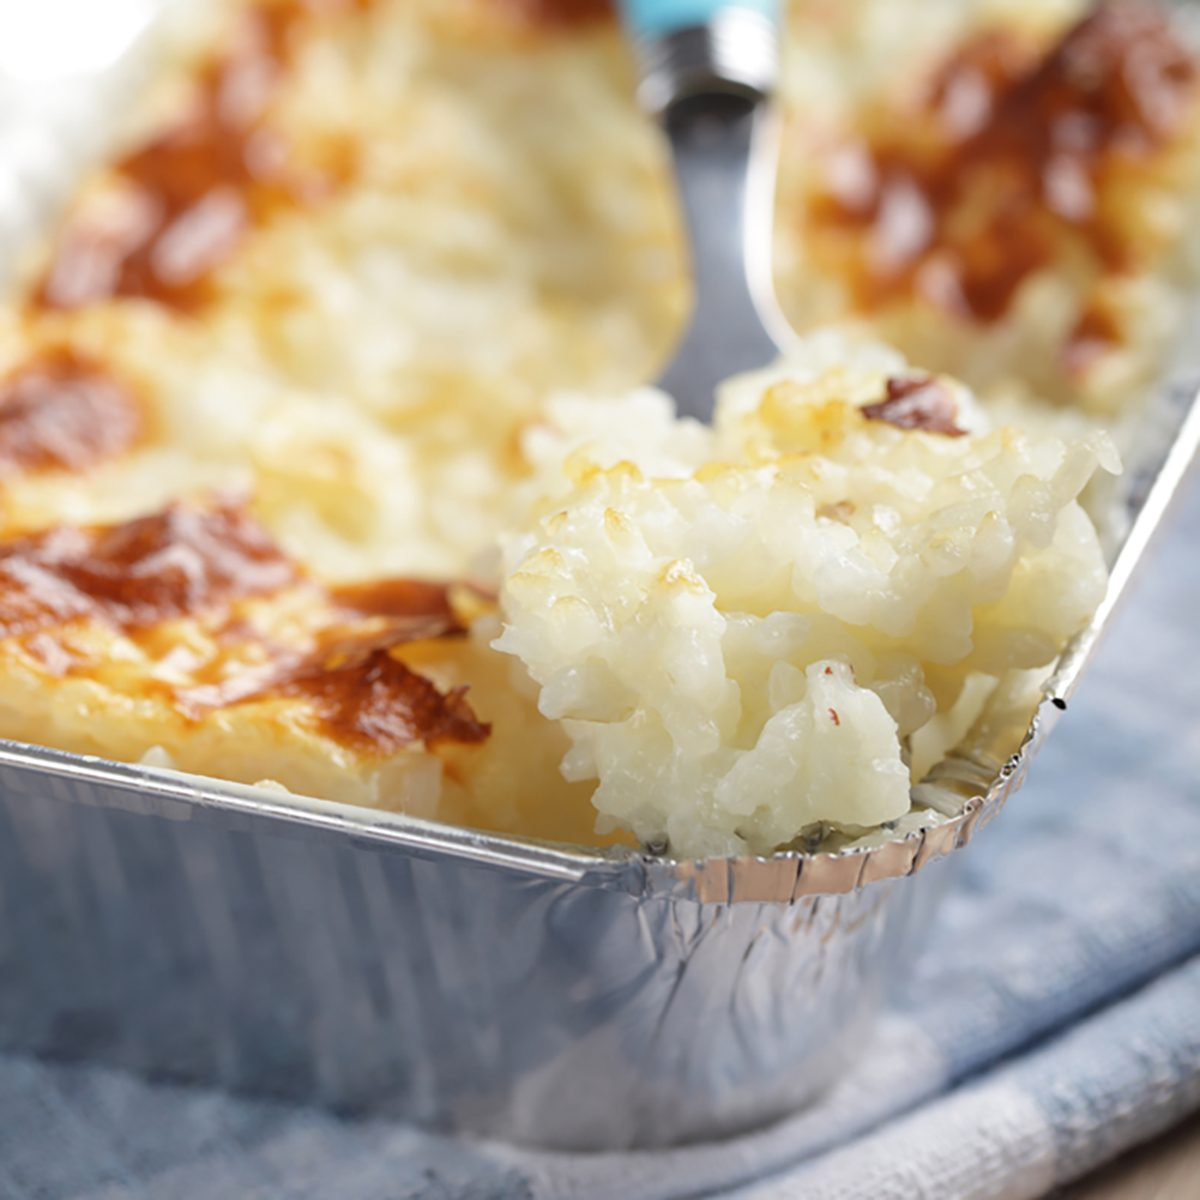 Rice pudding in the disposable aluminum baking pan